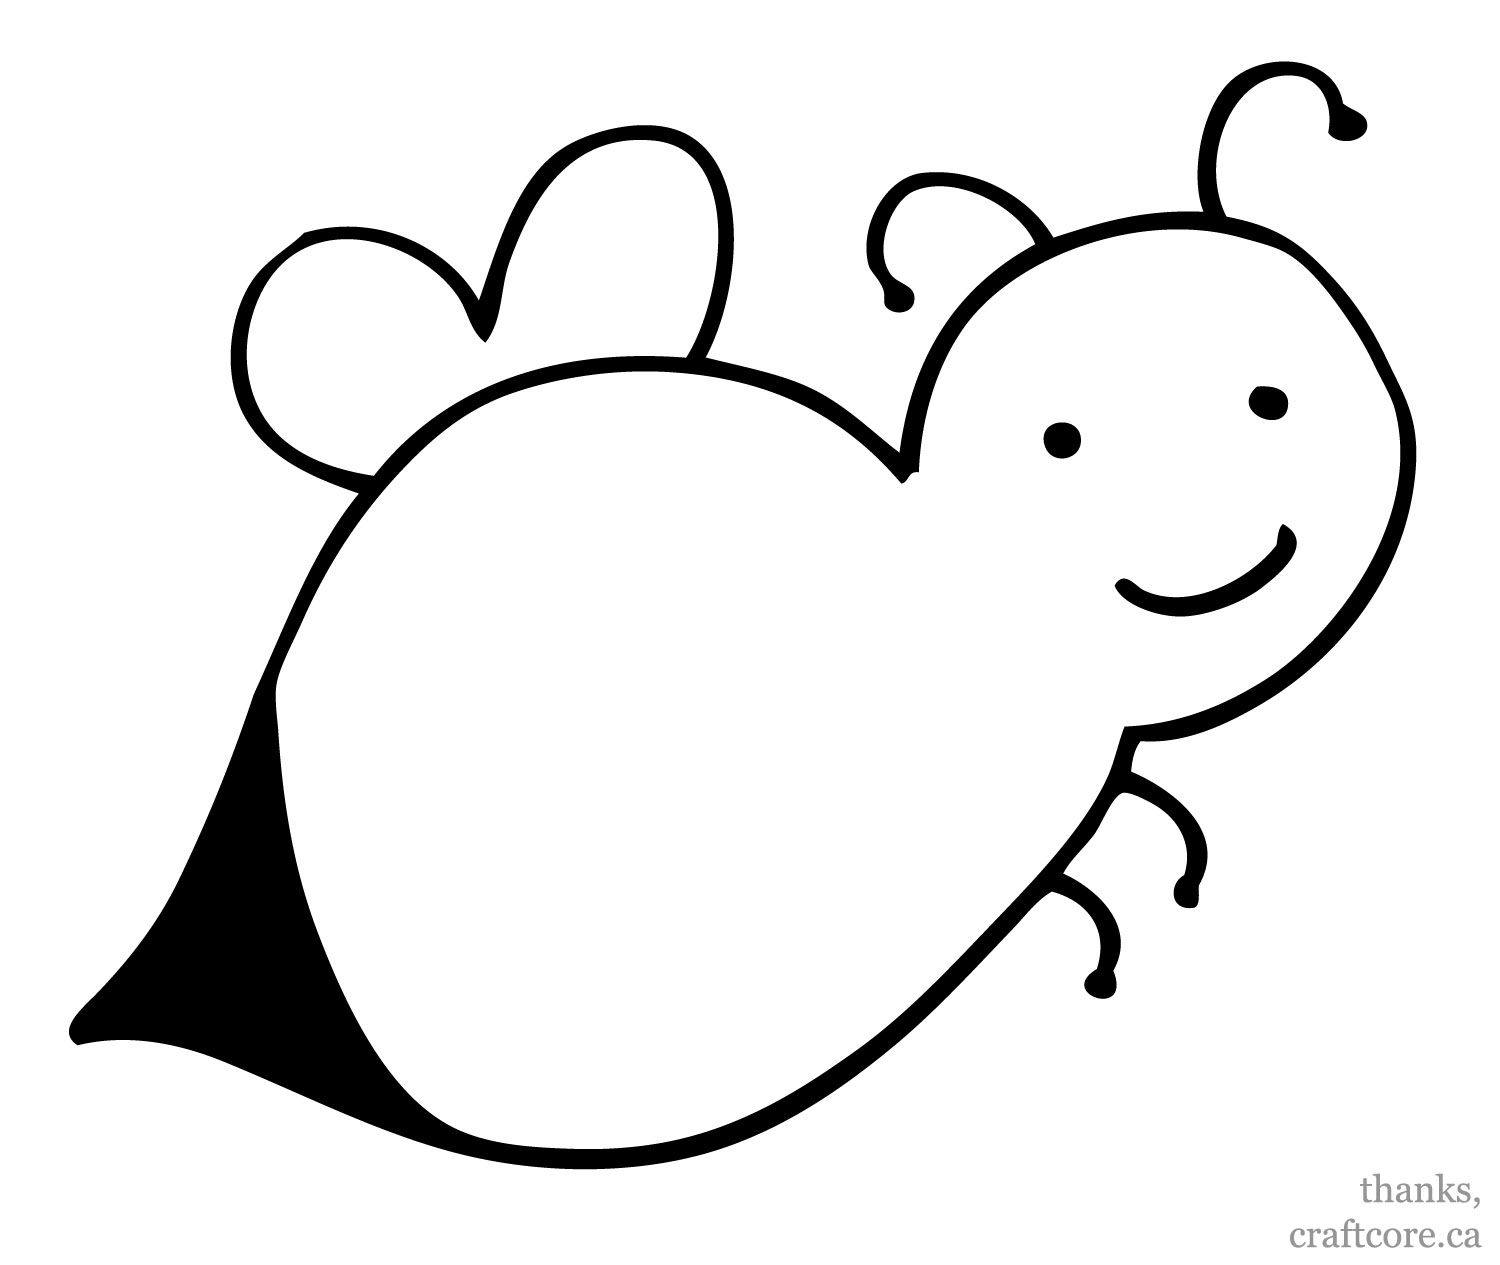 bees coloring page free bees online coloring drawings colored